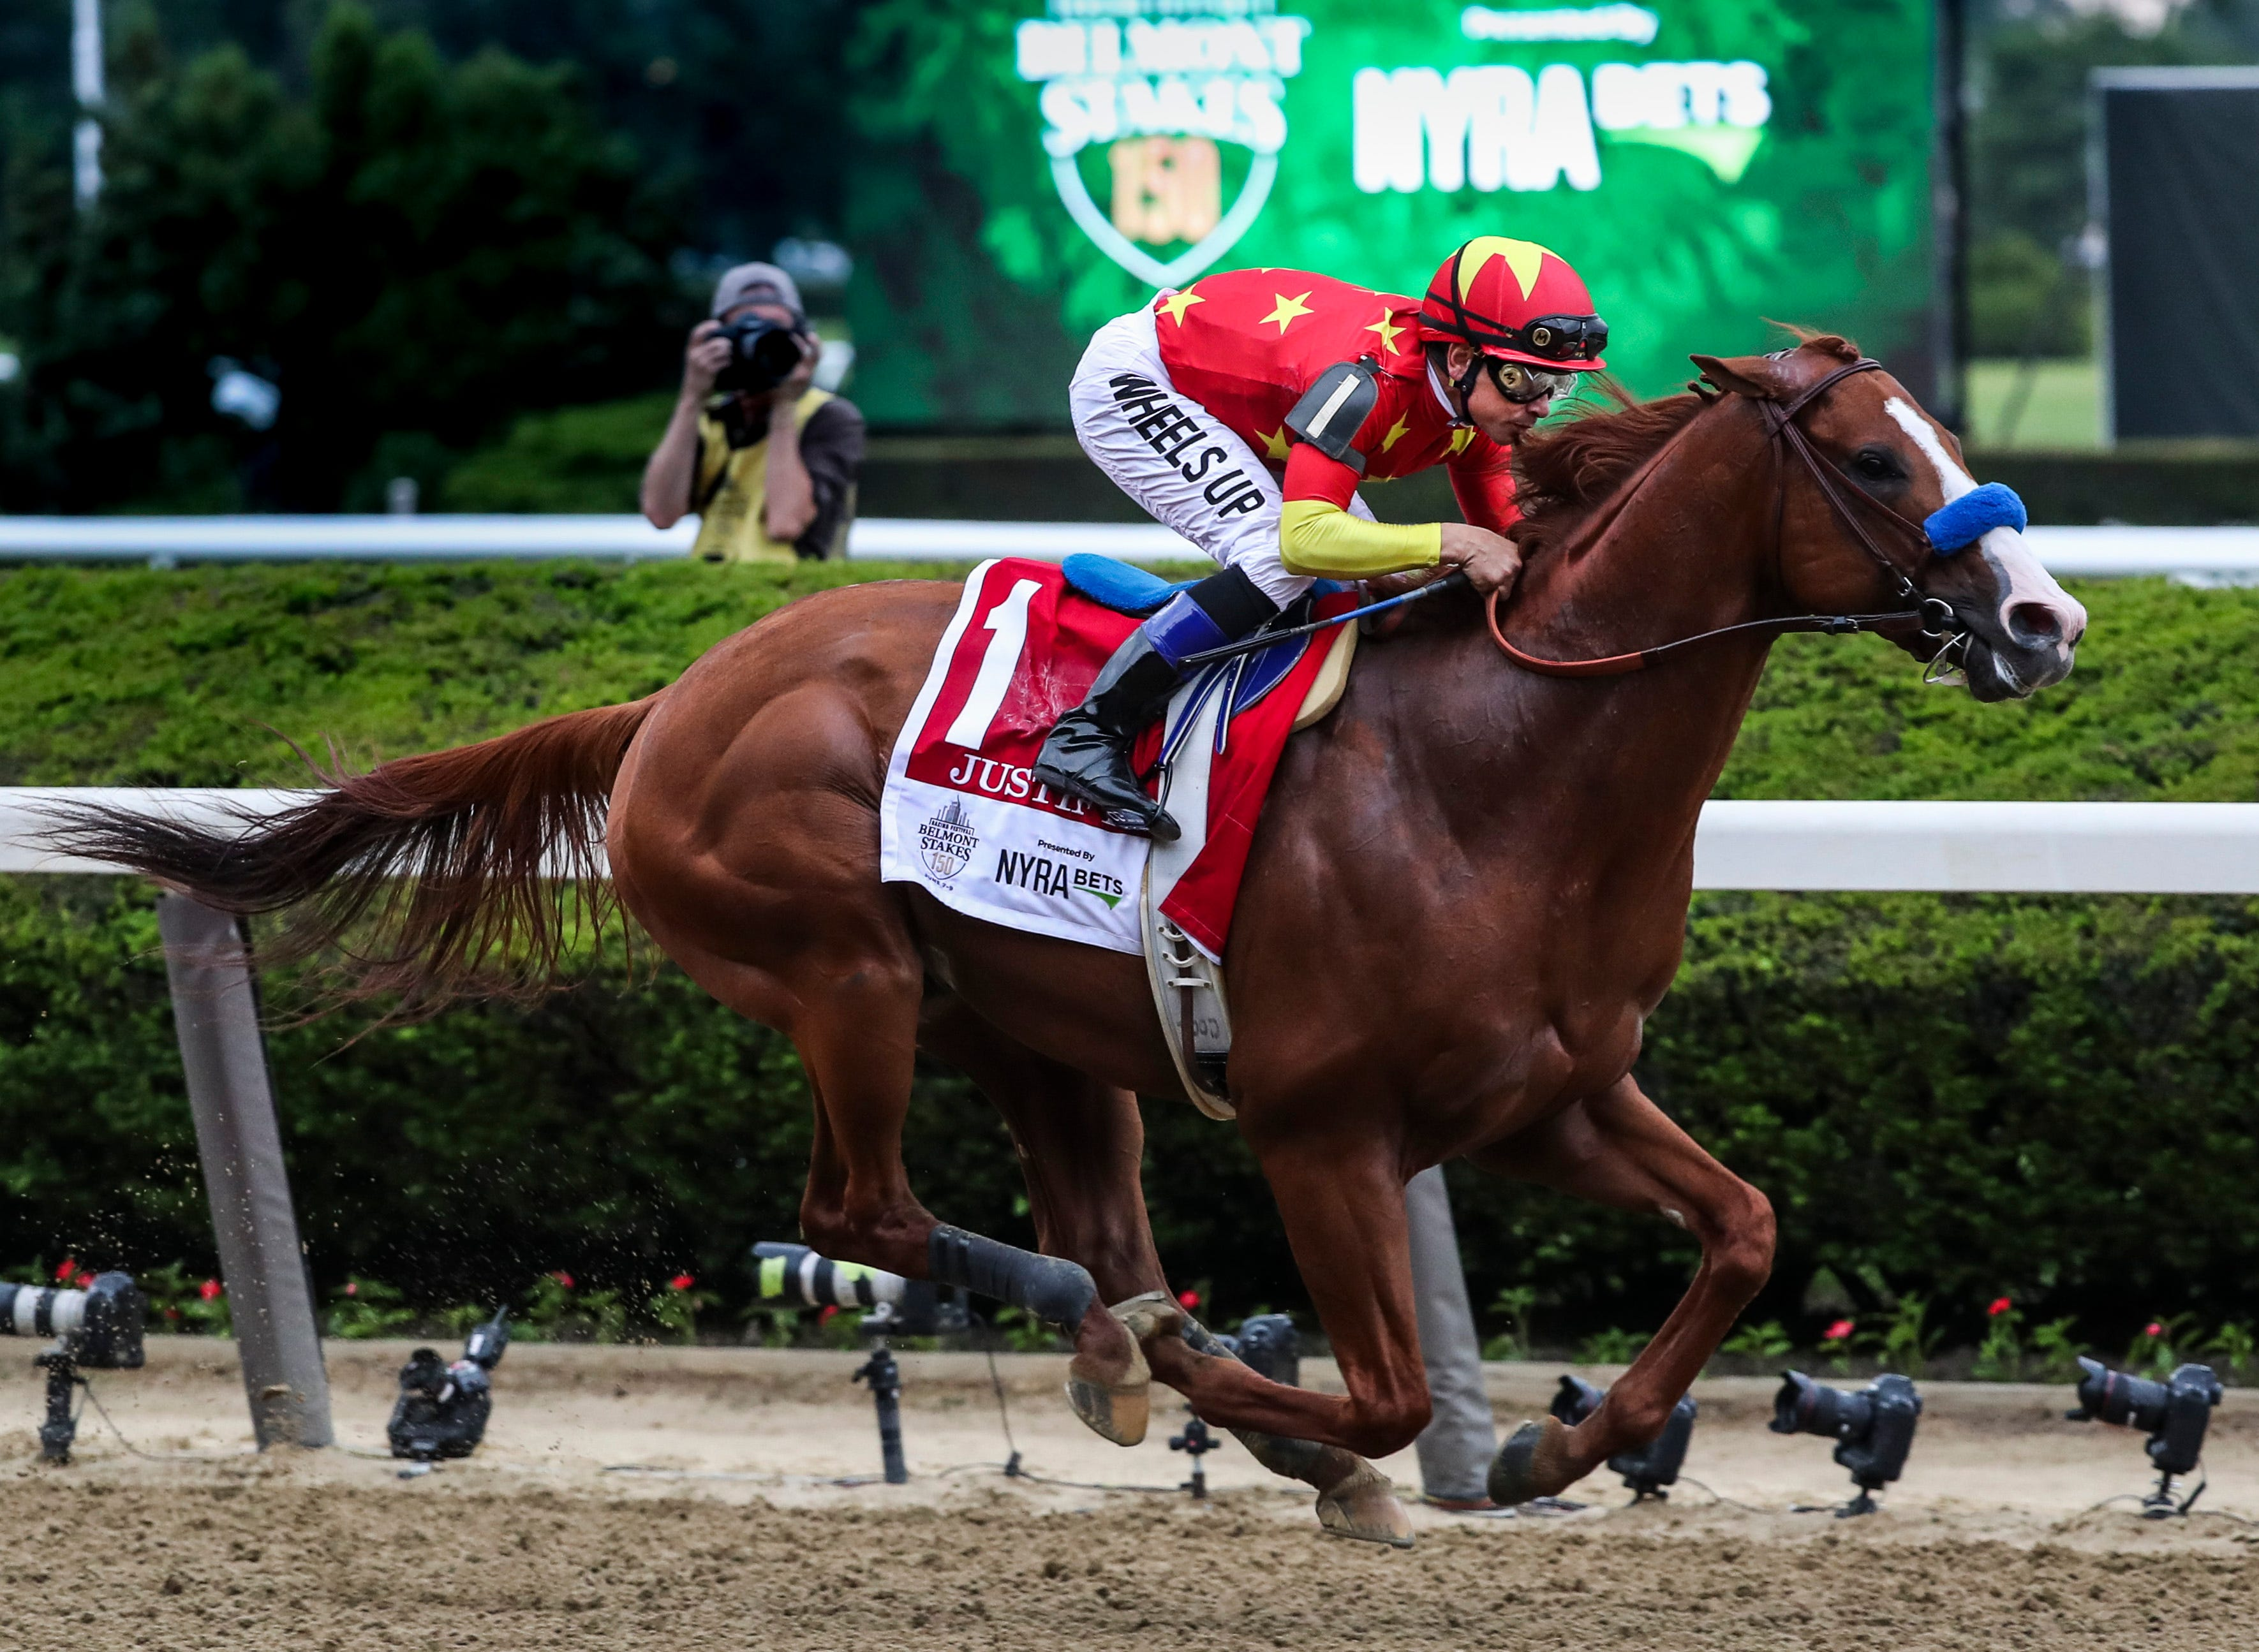 http://www courier-journal com/picture-gallery/sports/horses